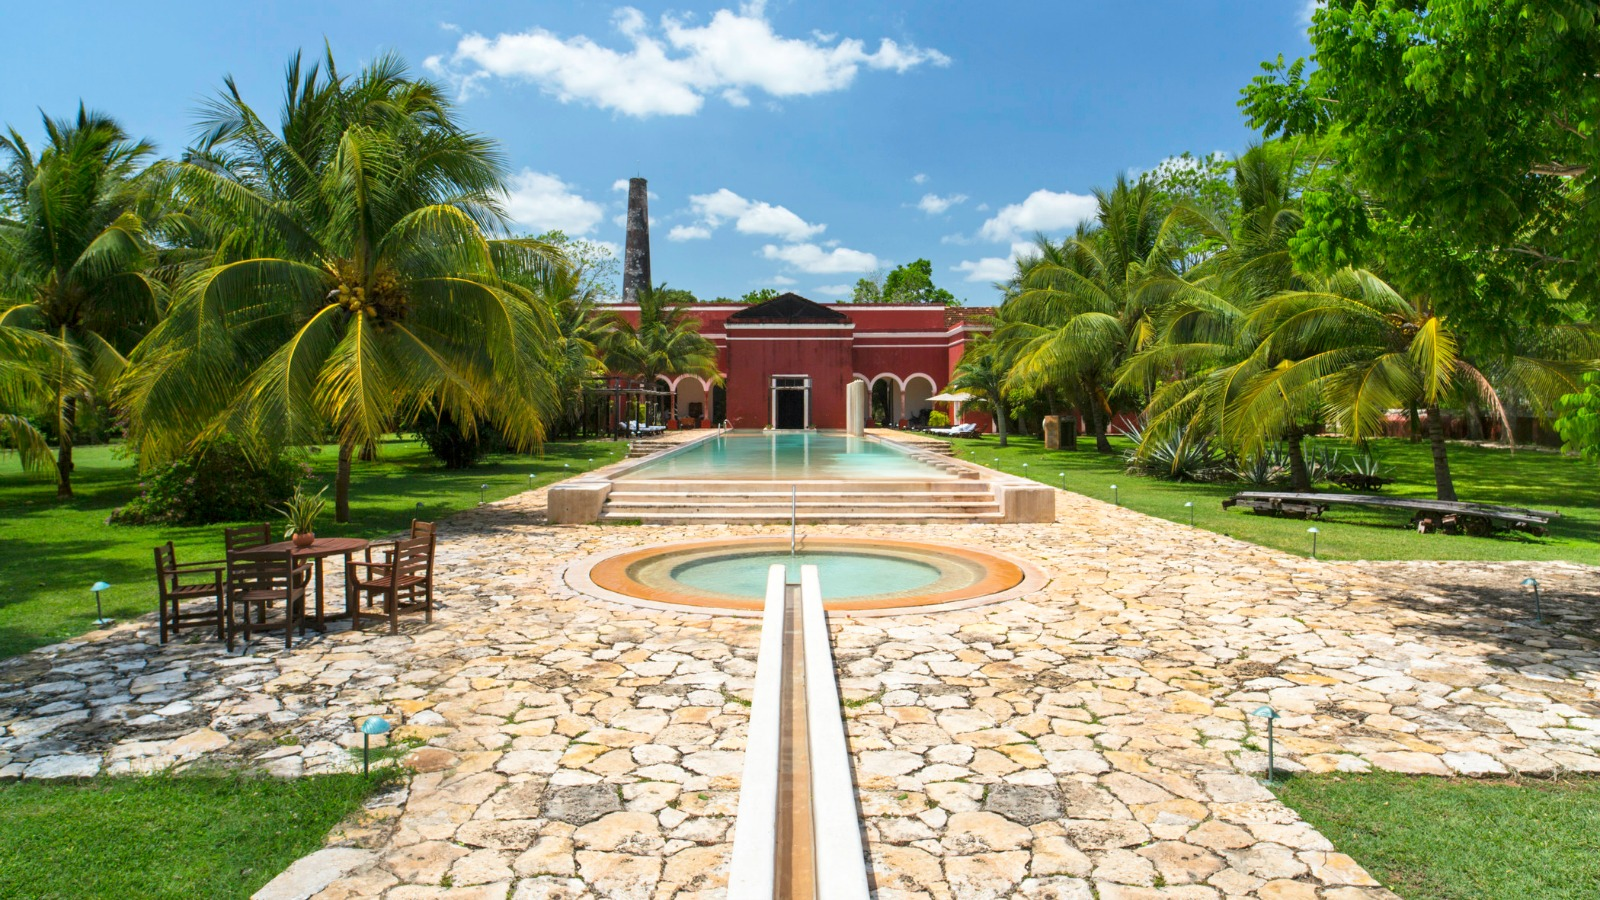 Hacienda Temozon - Main Pool and Jacuzzi